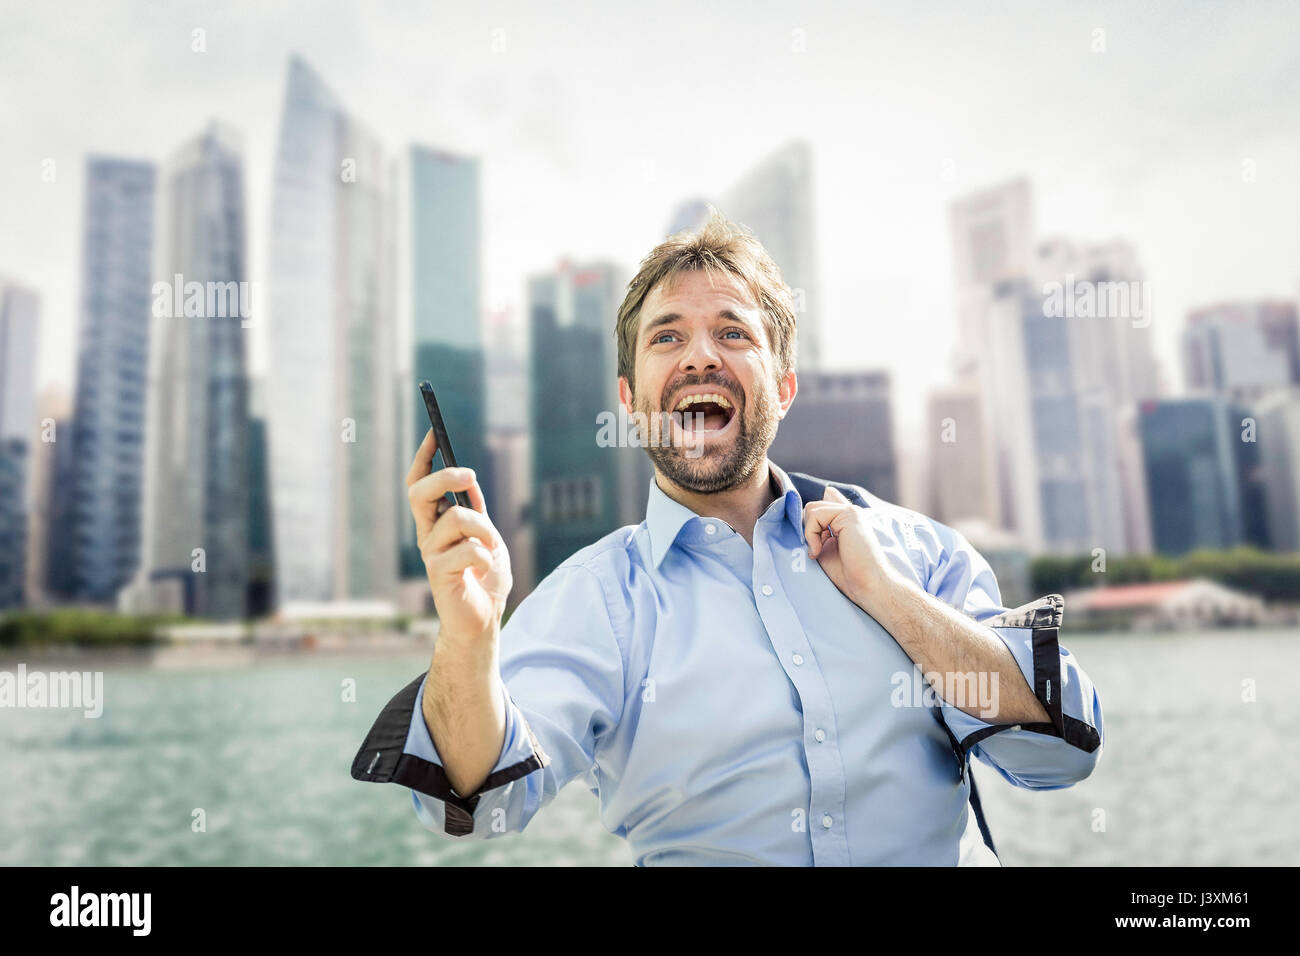 Businessman holding extatique sur smartphone city waterfront Photo Stock